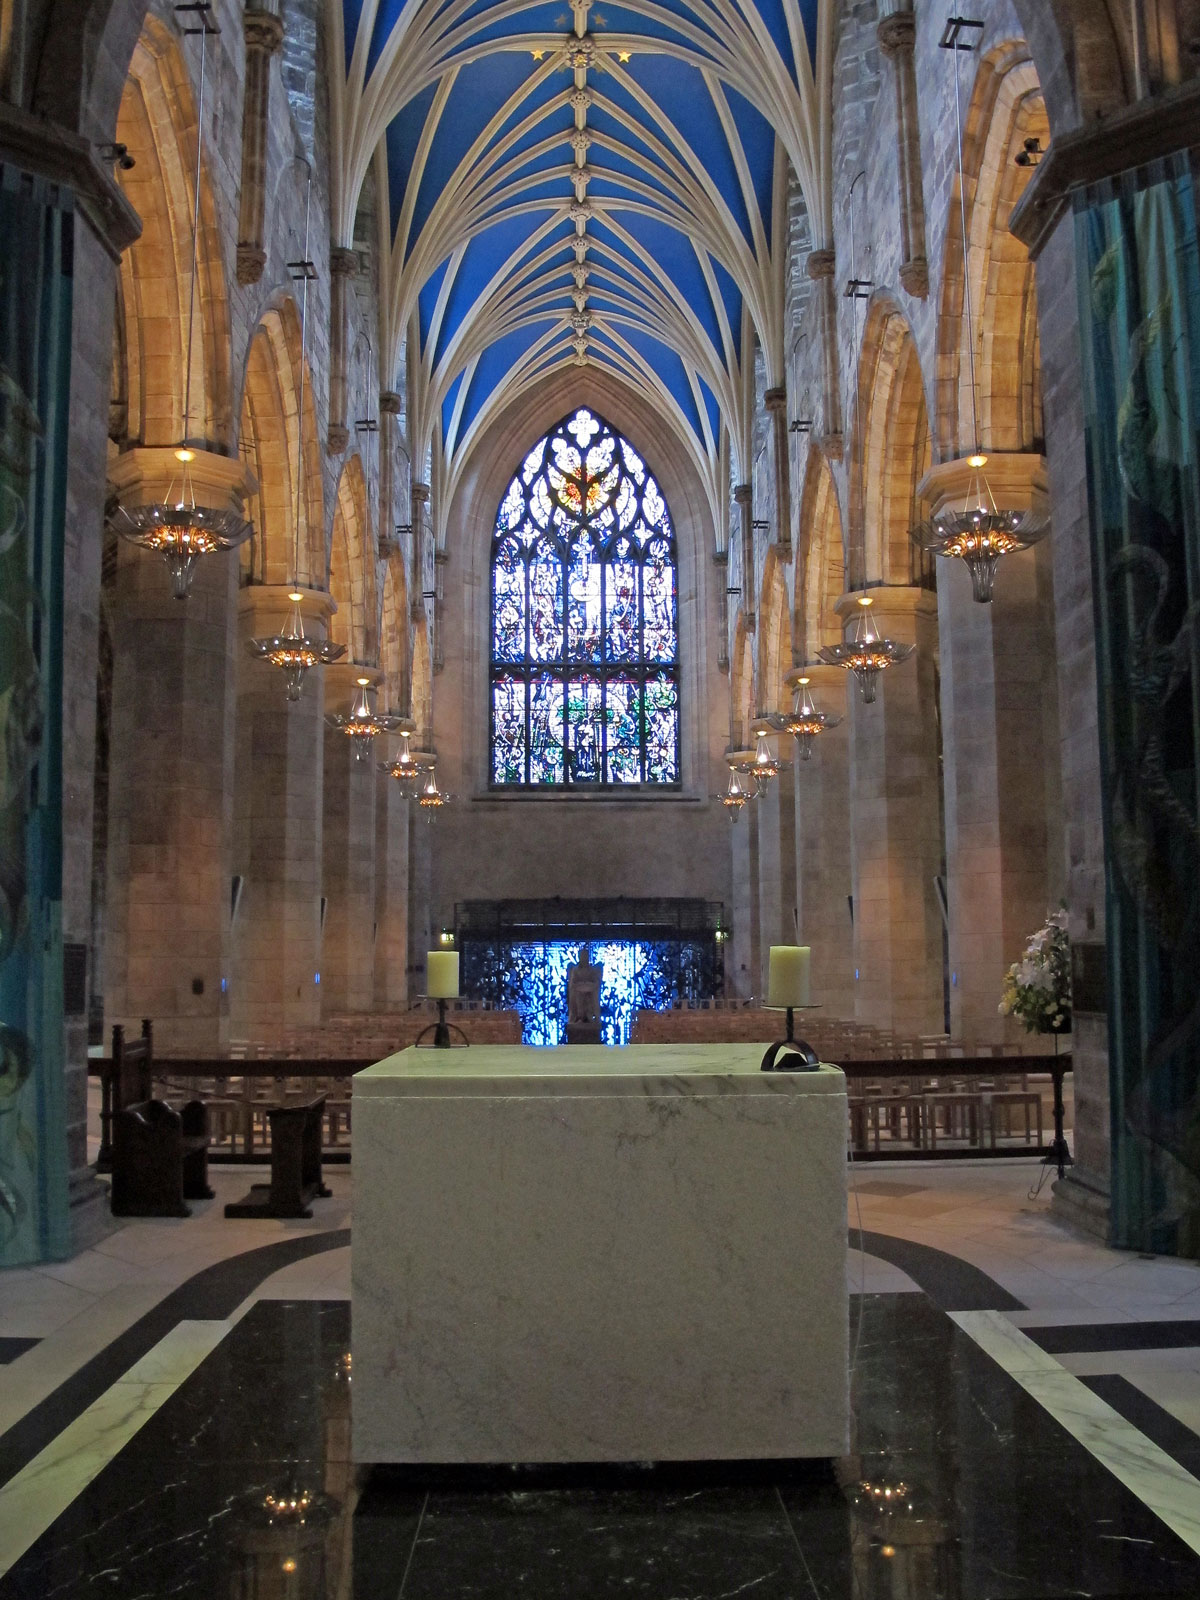 View from the Chancel